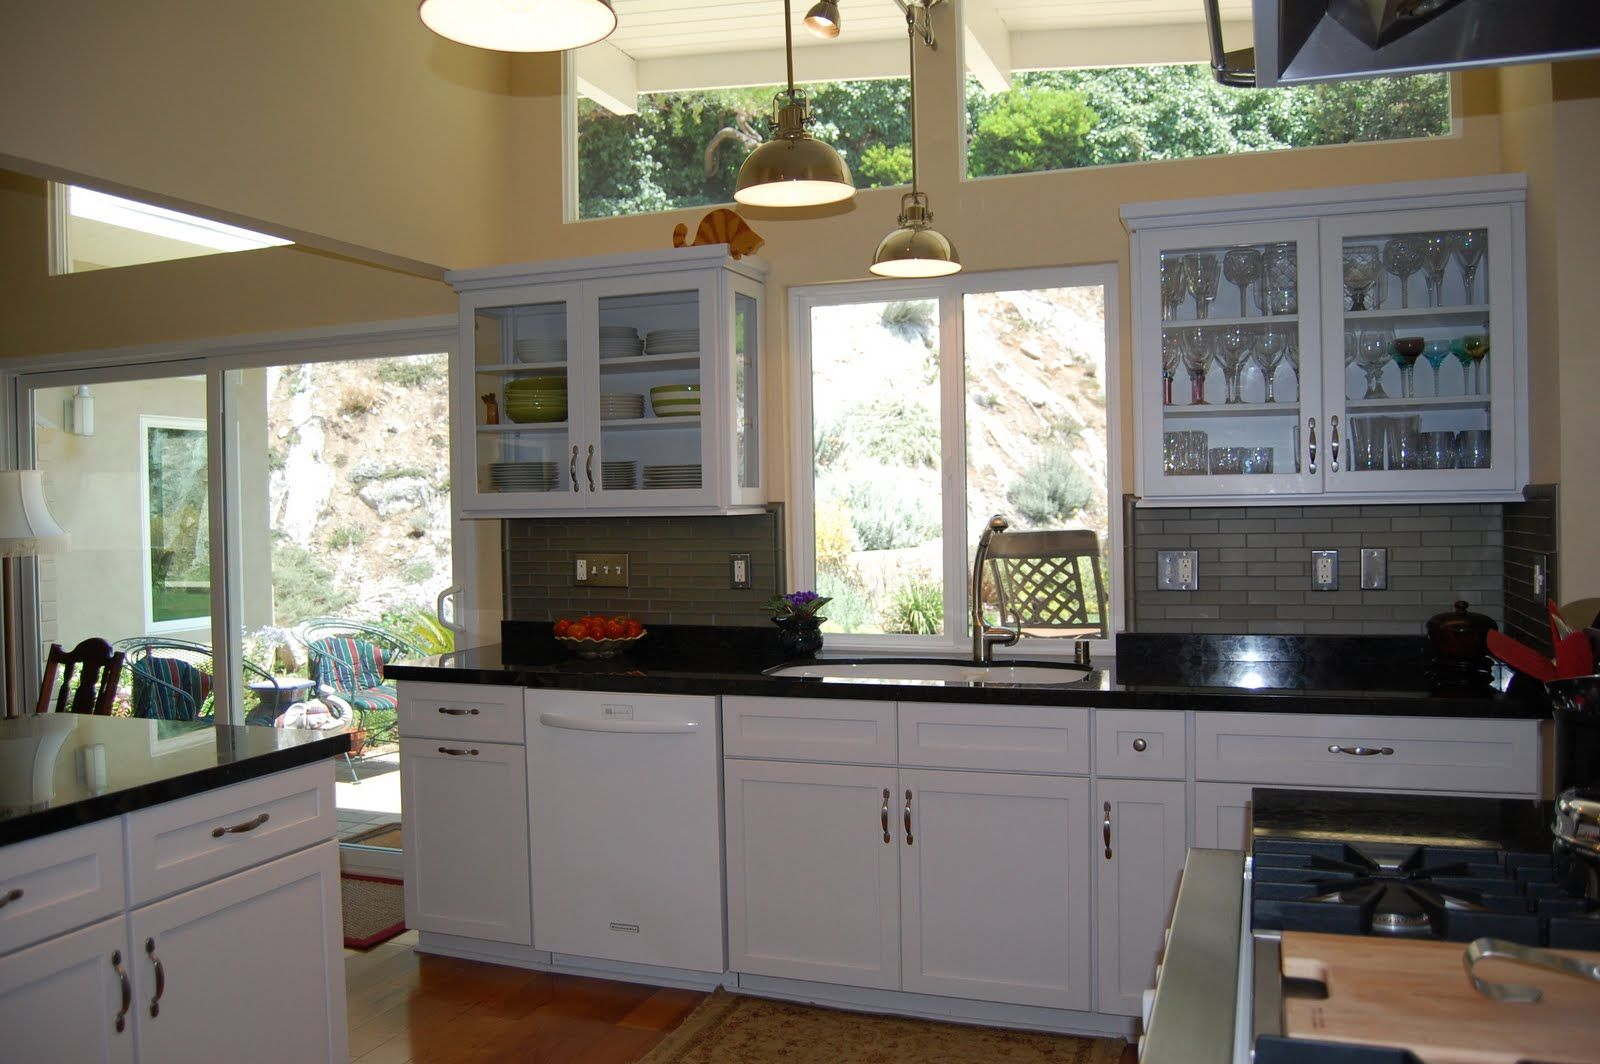 Home Kitchen Remodeling Exterior Plans Windows Over Cabinets  No Soffits  Kitchen Remodel Ideas .